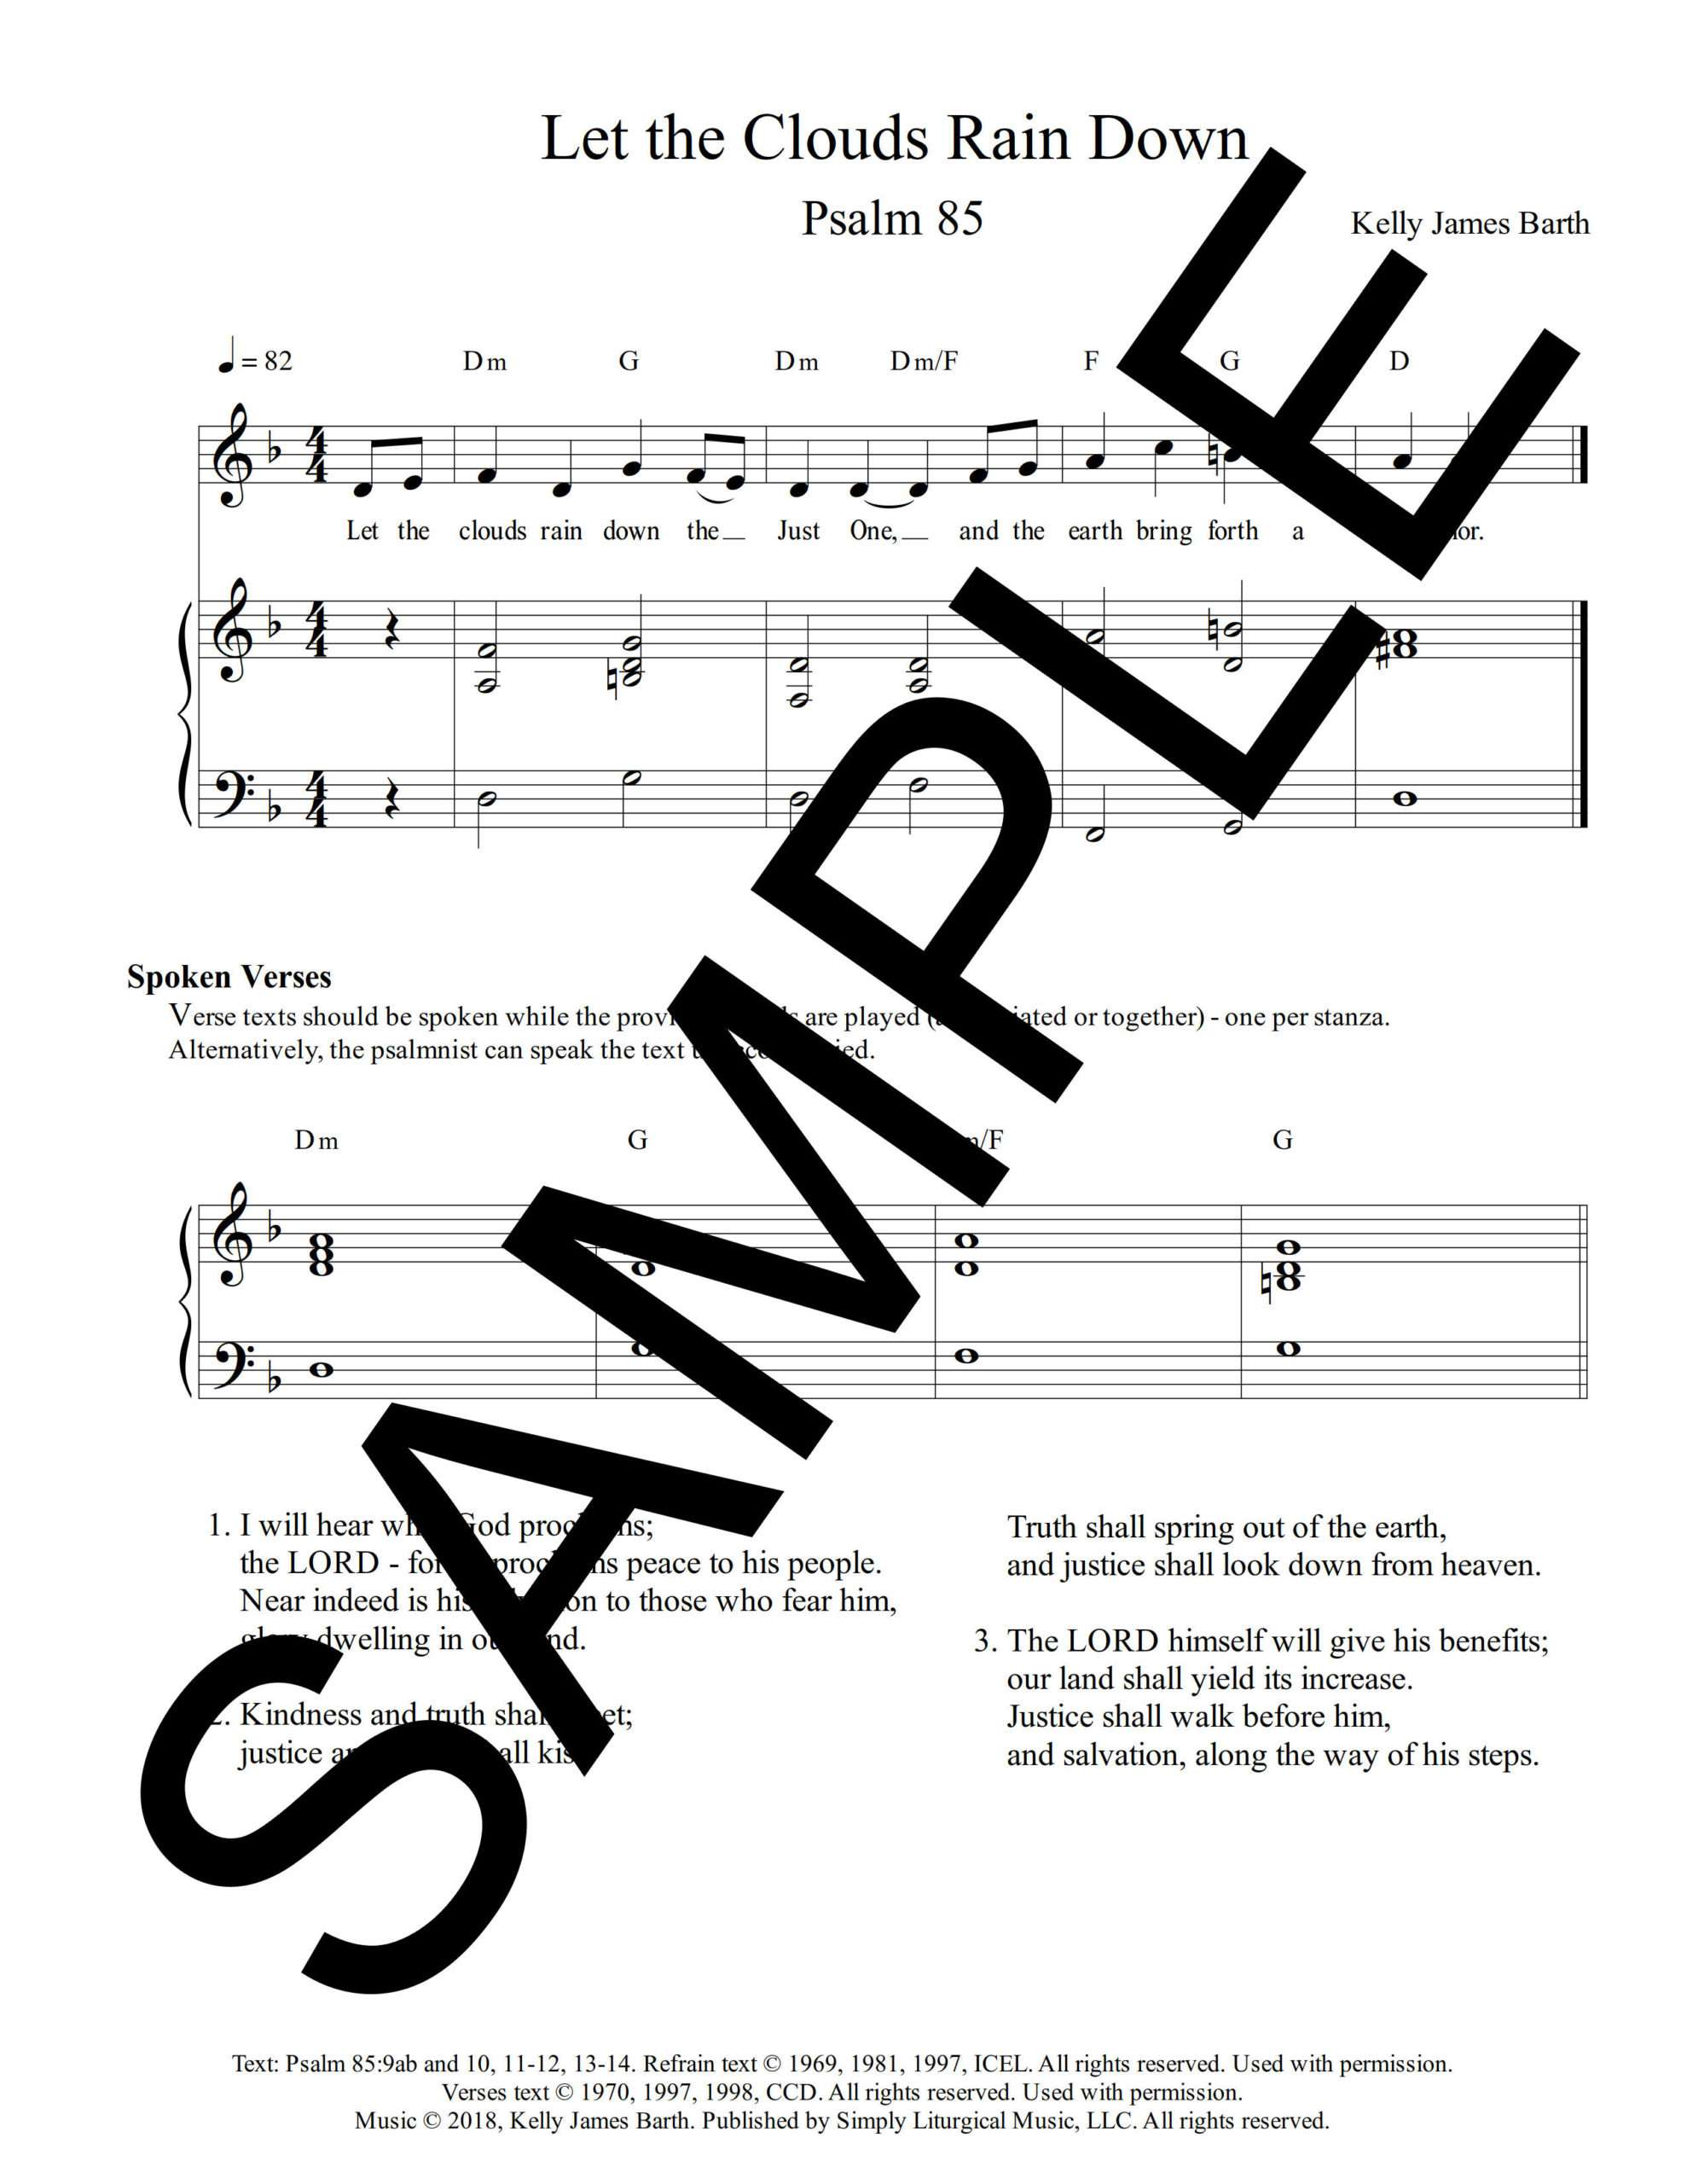 Psalm 85 Let the Clouds Rain Down Barth Sample Sheet Music 1 png